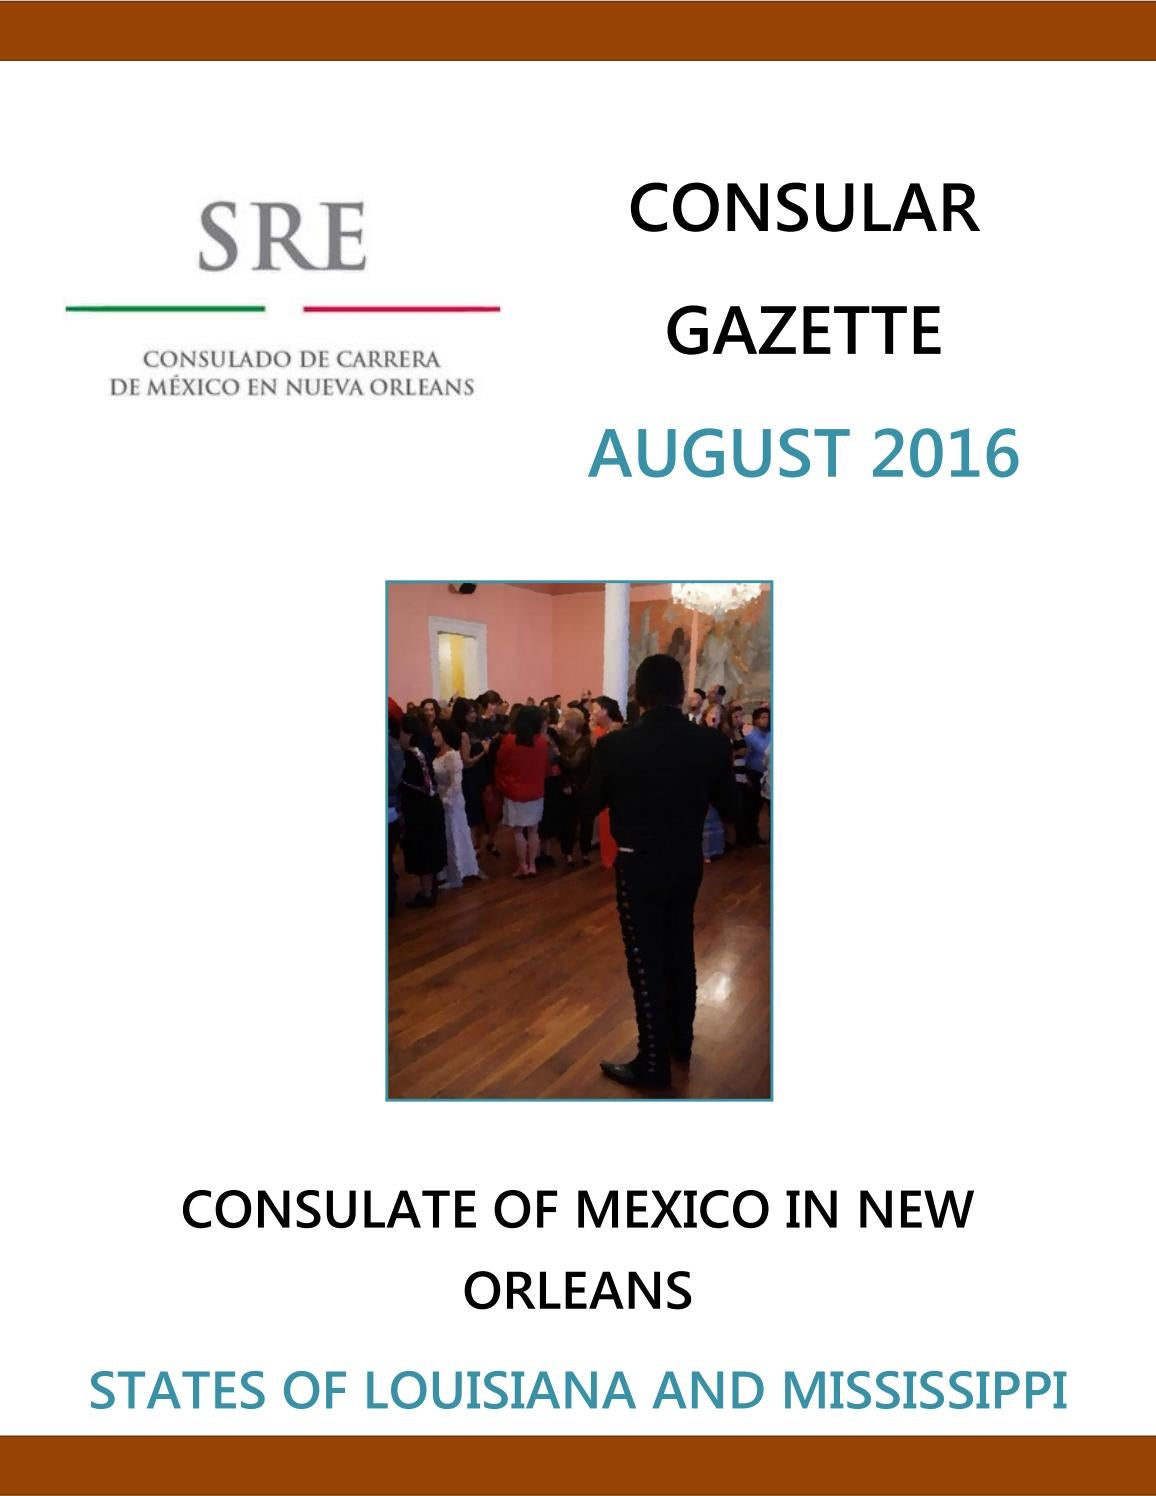 Consulate of Mexico in New Orleans Consular Gazette August 2016 by